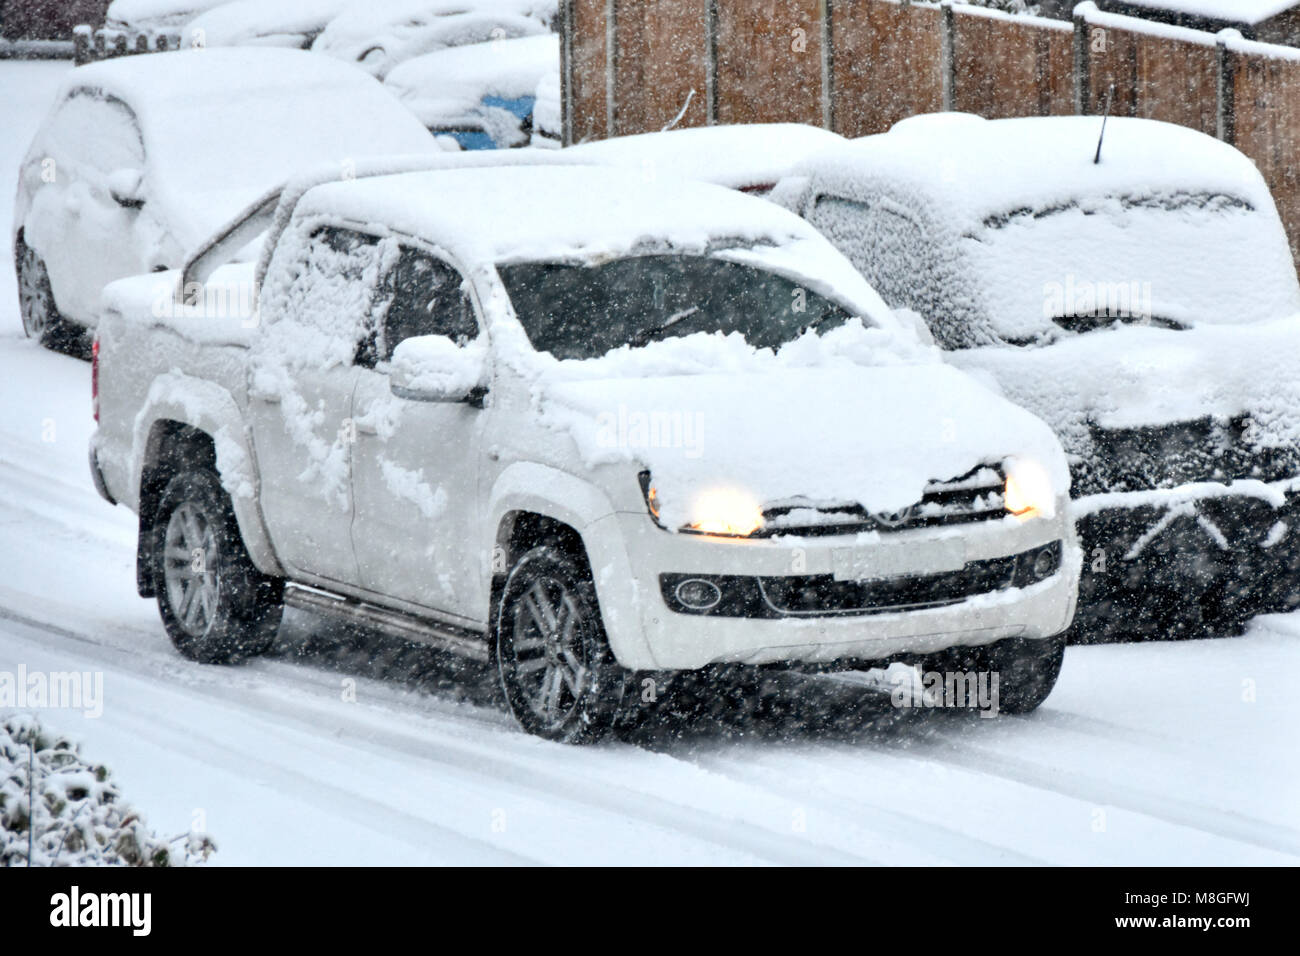 White car covered in snow with headlights on driving past parked vehicles with winter snow falling on snow covered - Stock Image